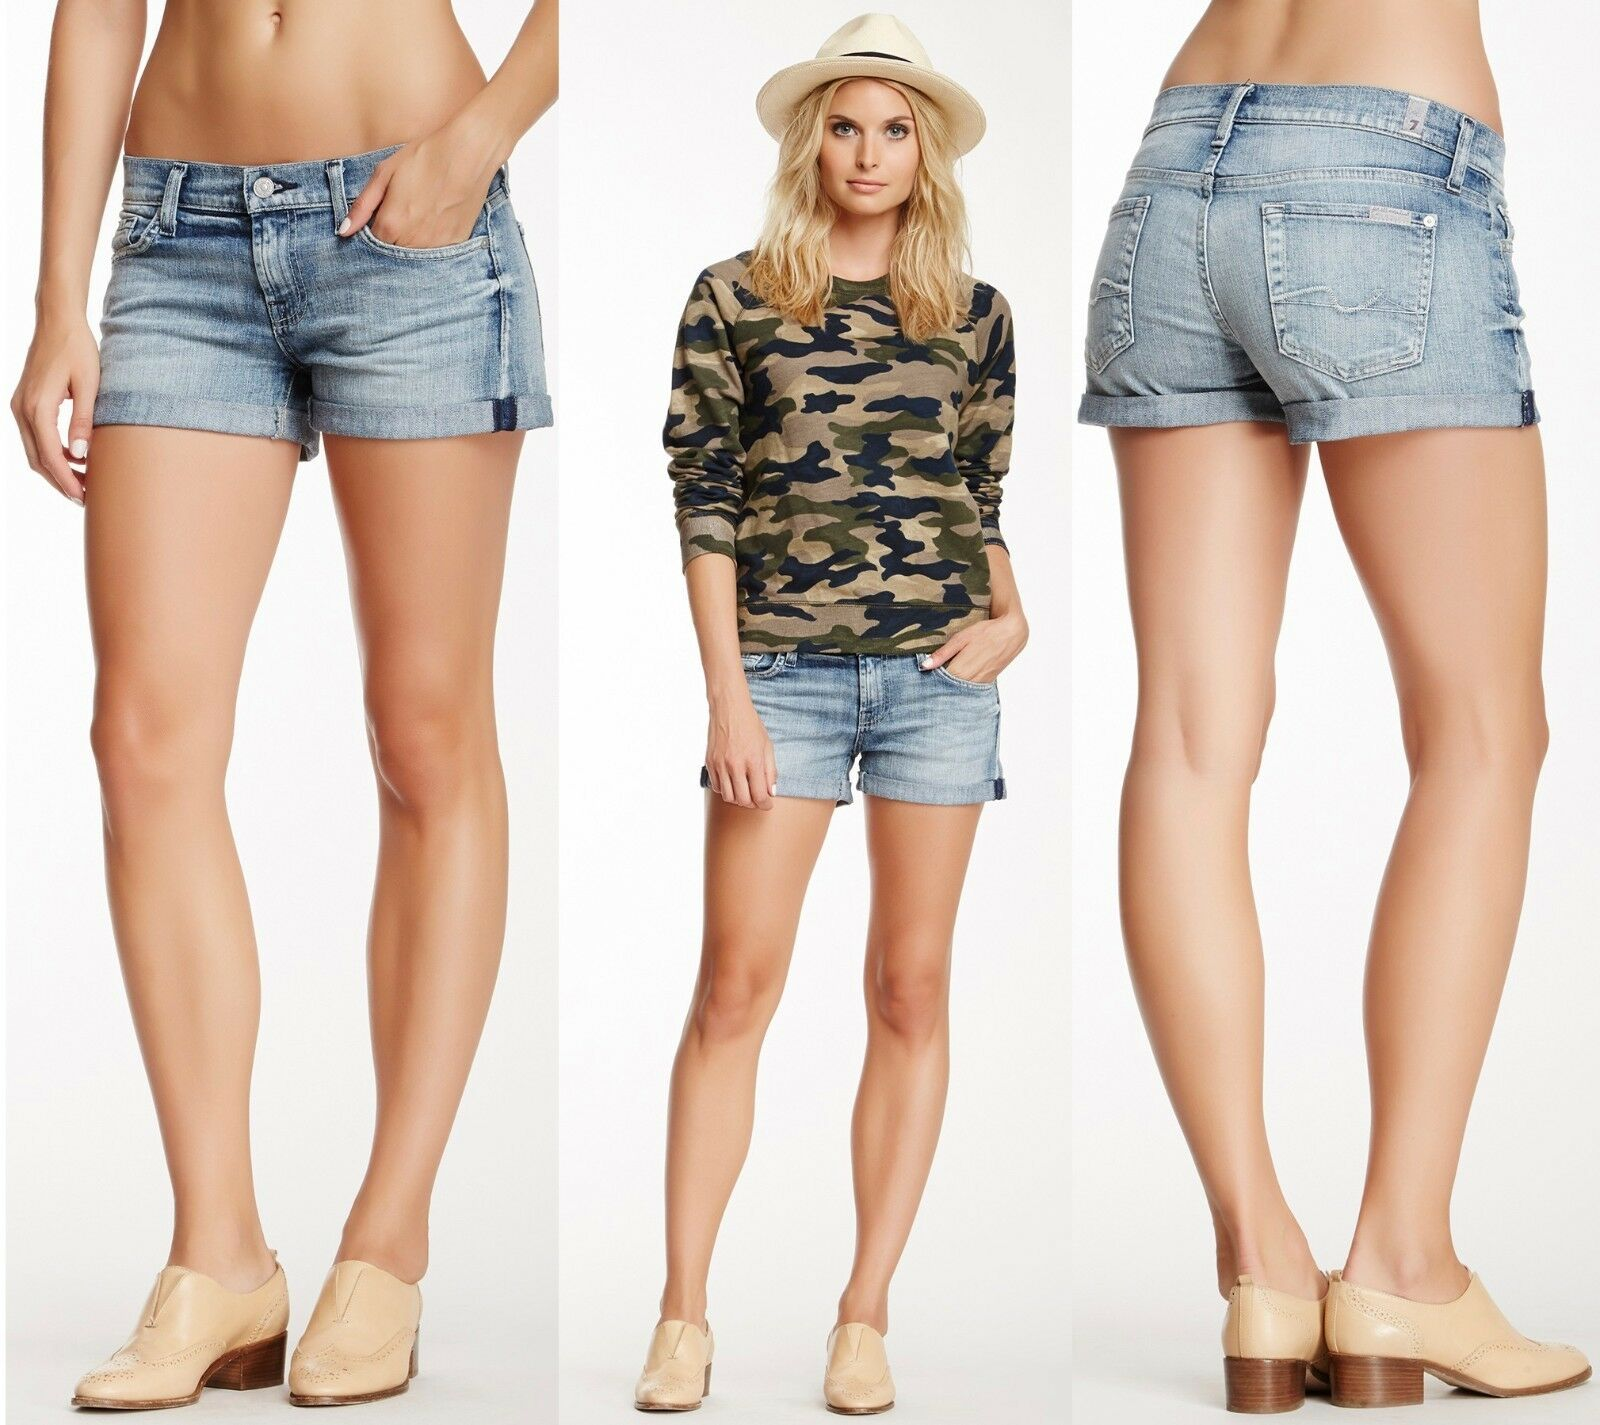 158 7 For All Mankind Fold Over Cuff Condell bluee Distressed Jeans Denim Shorts